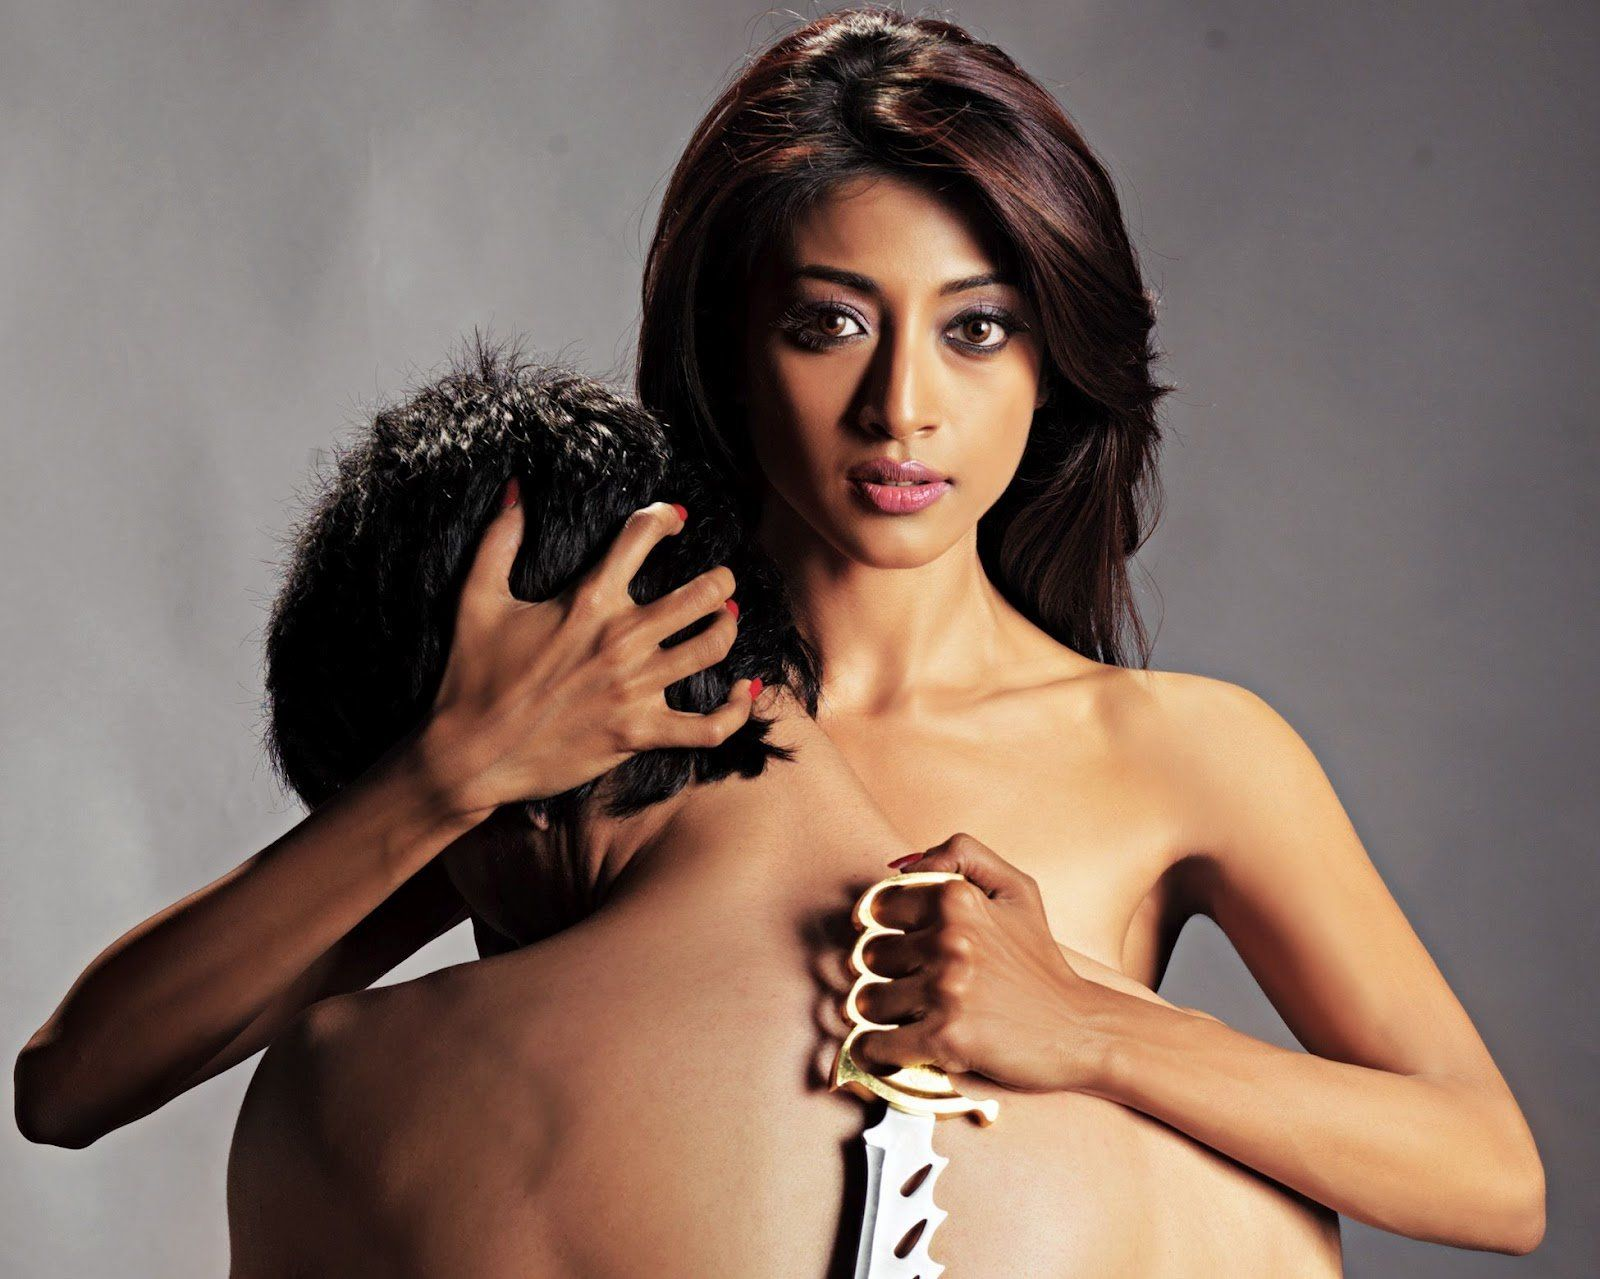 Bollywood actress without clothes pics